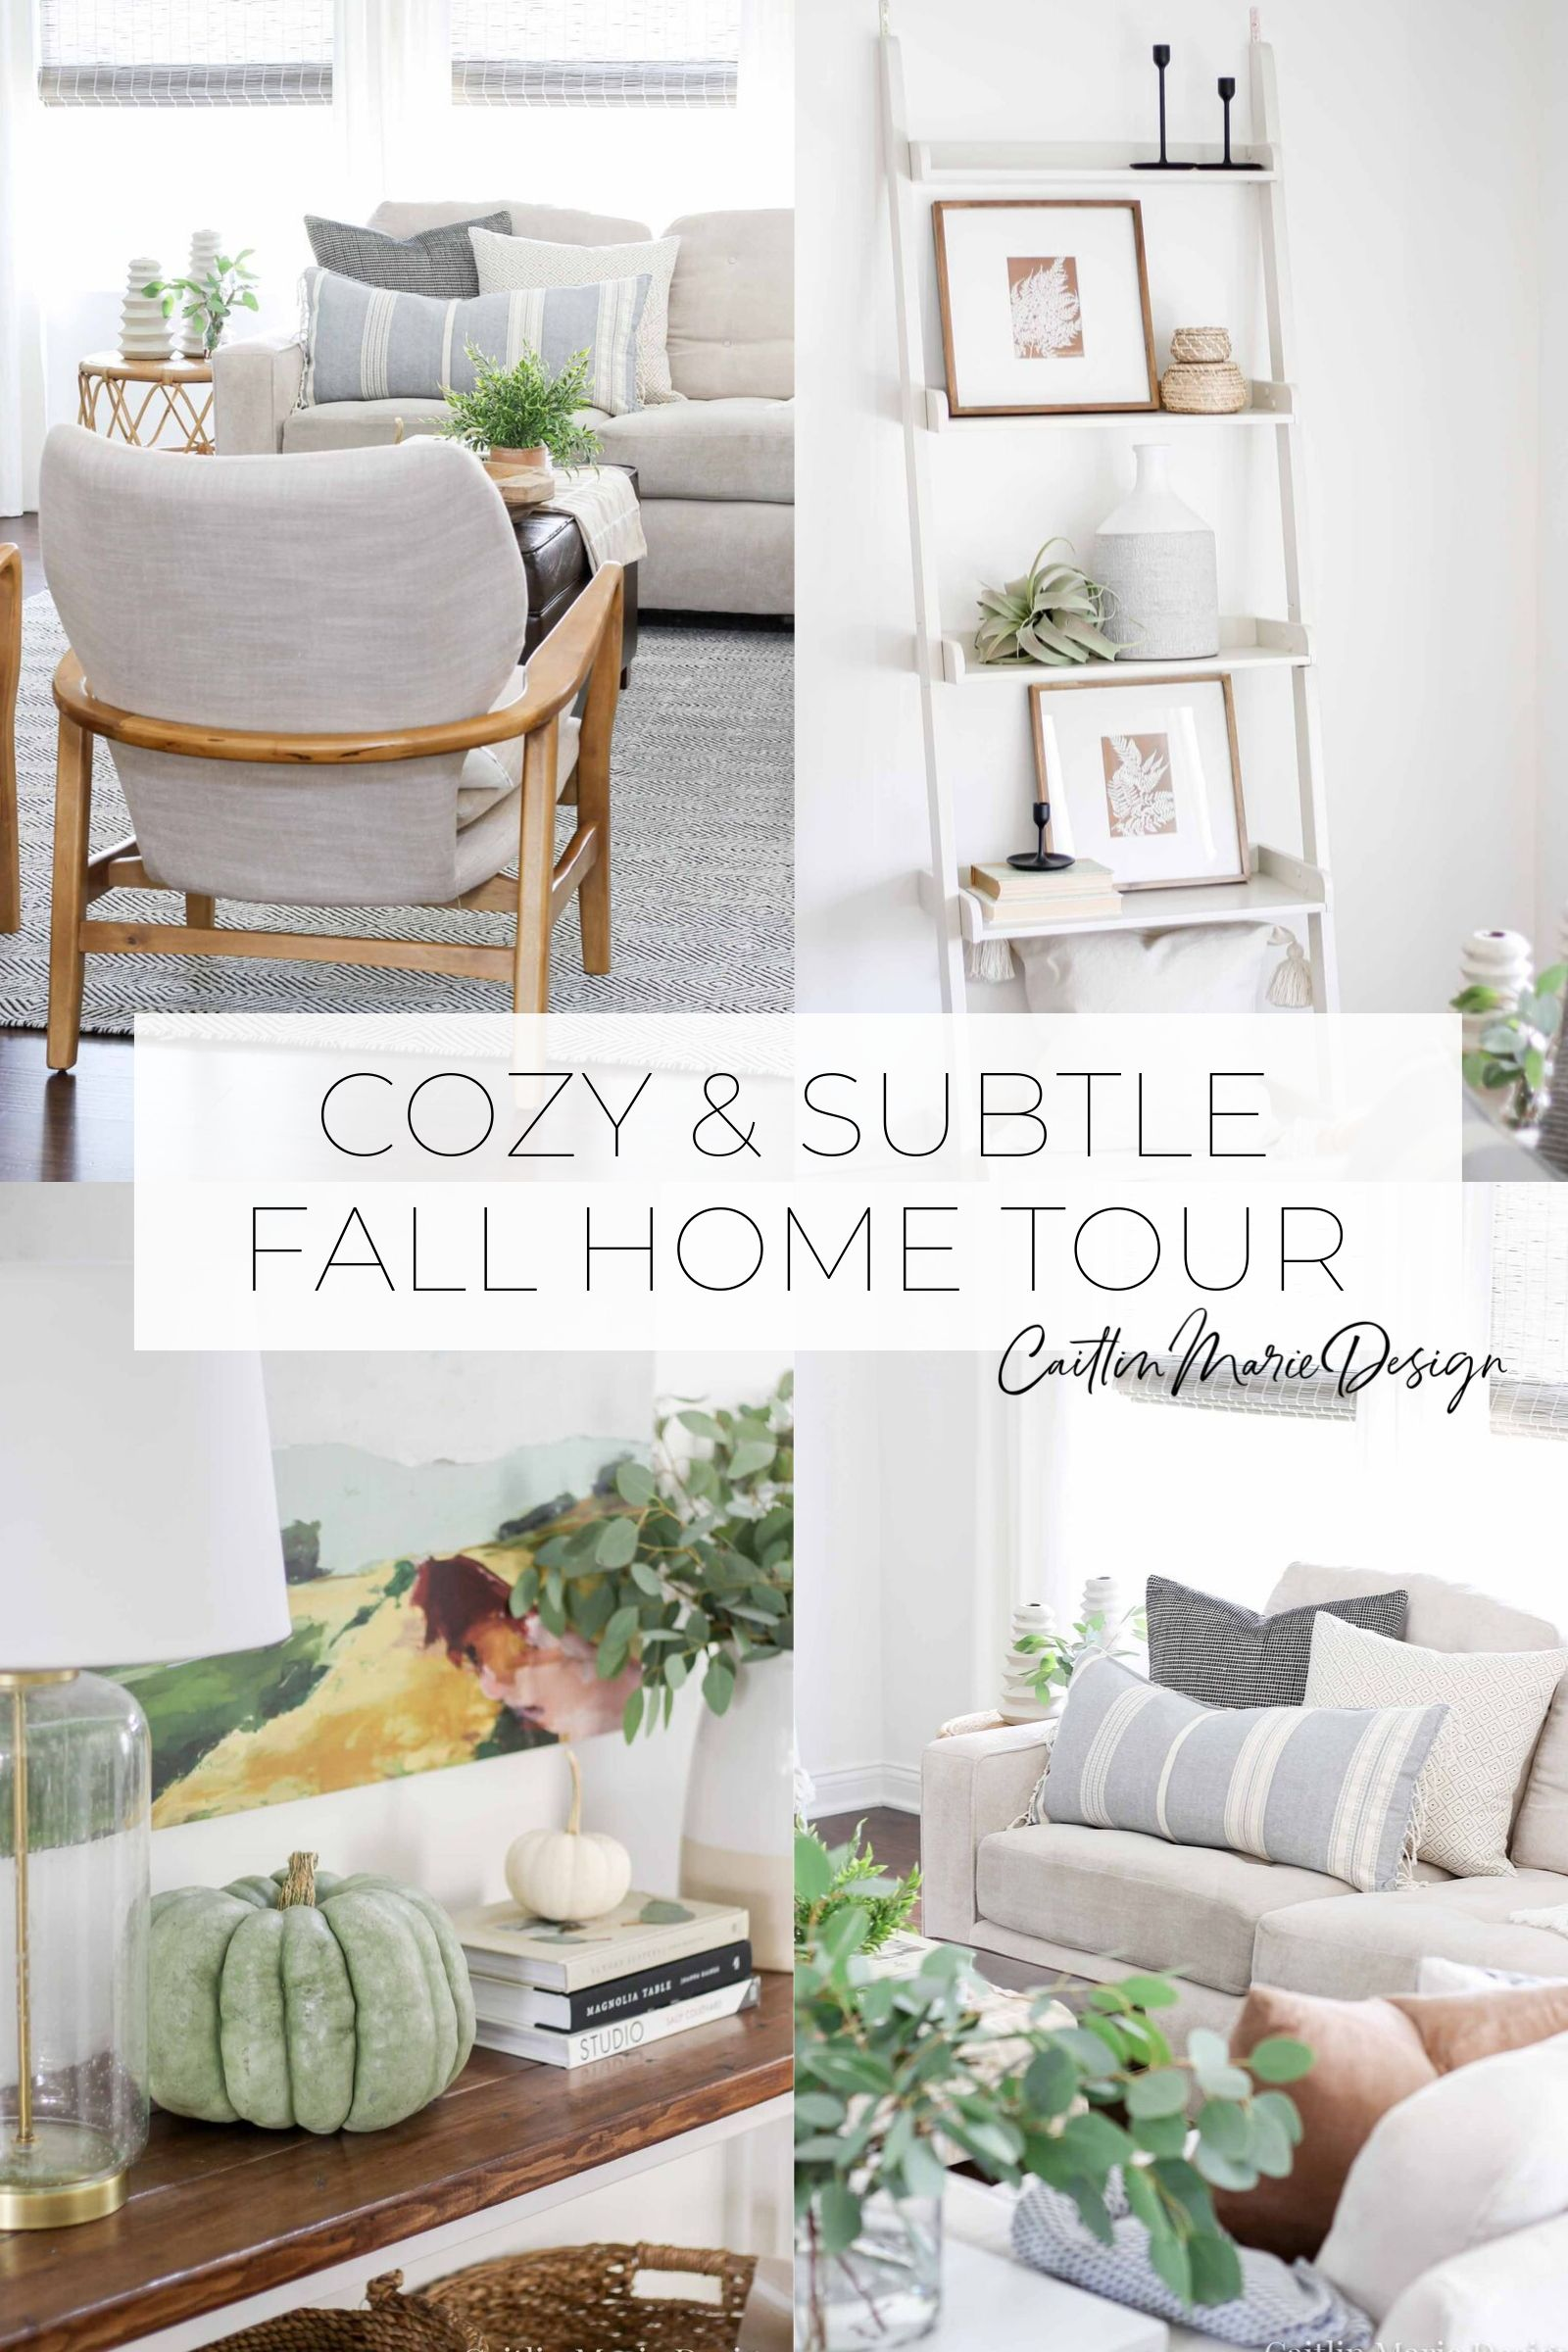 Fall Home Tour 2019 | fall decor, minimalist, modern traditional, coastal home, neutral, budget friendly